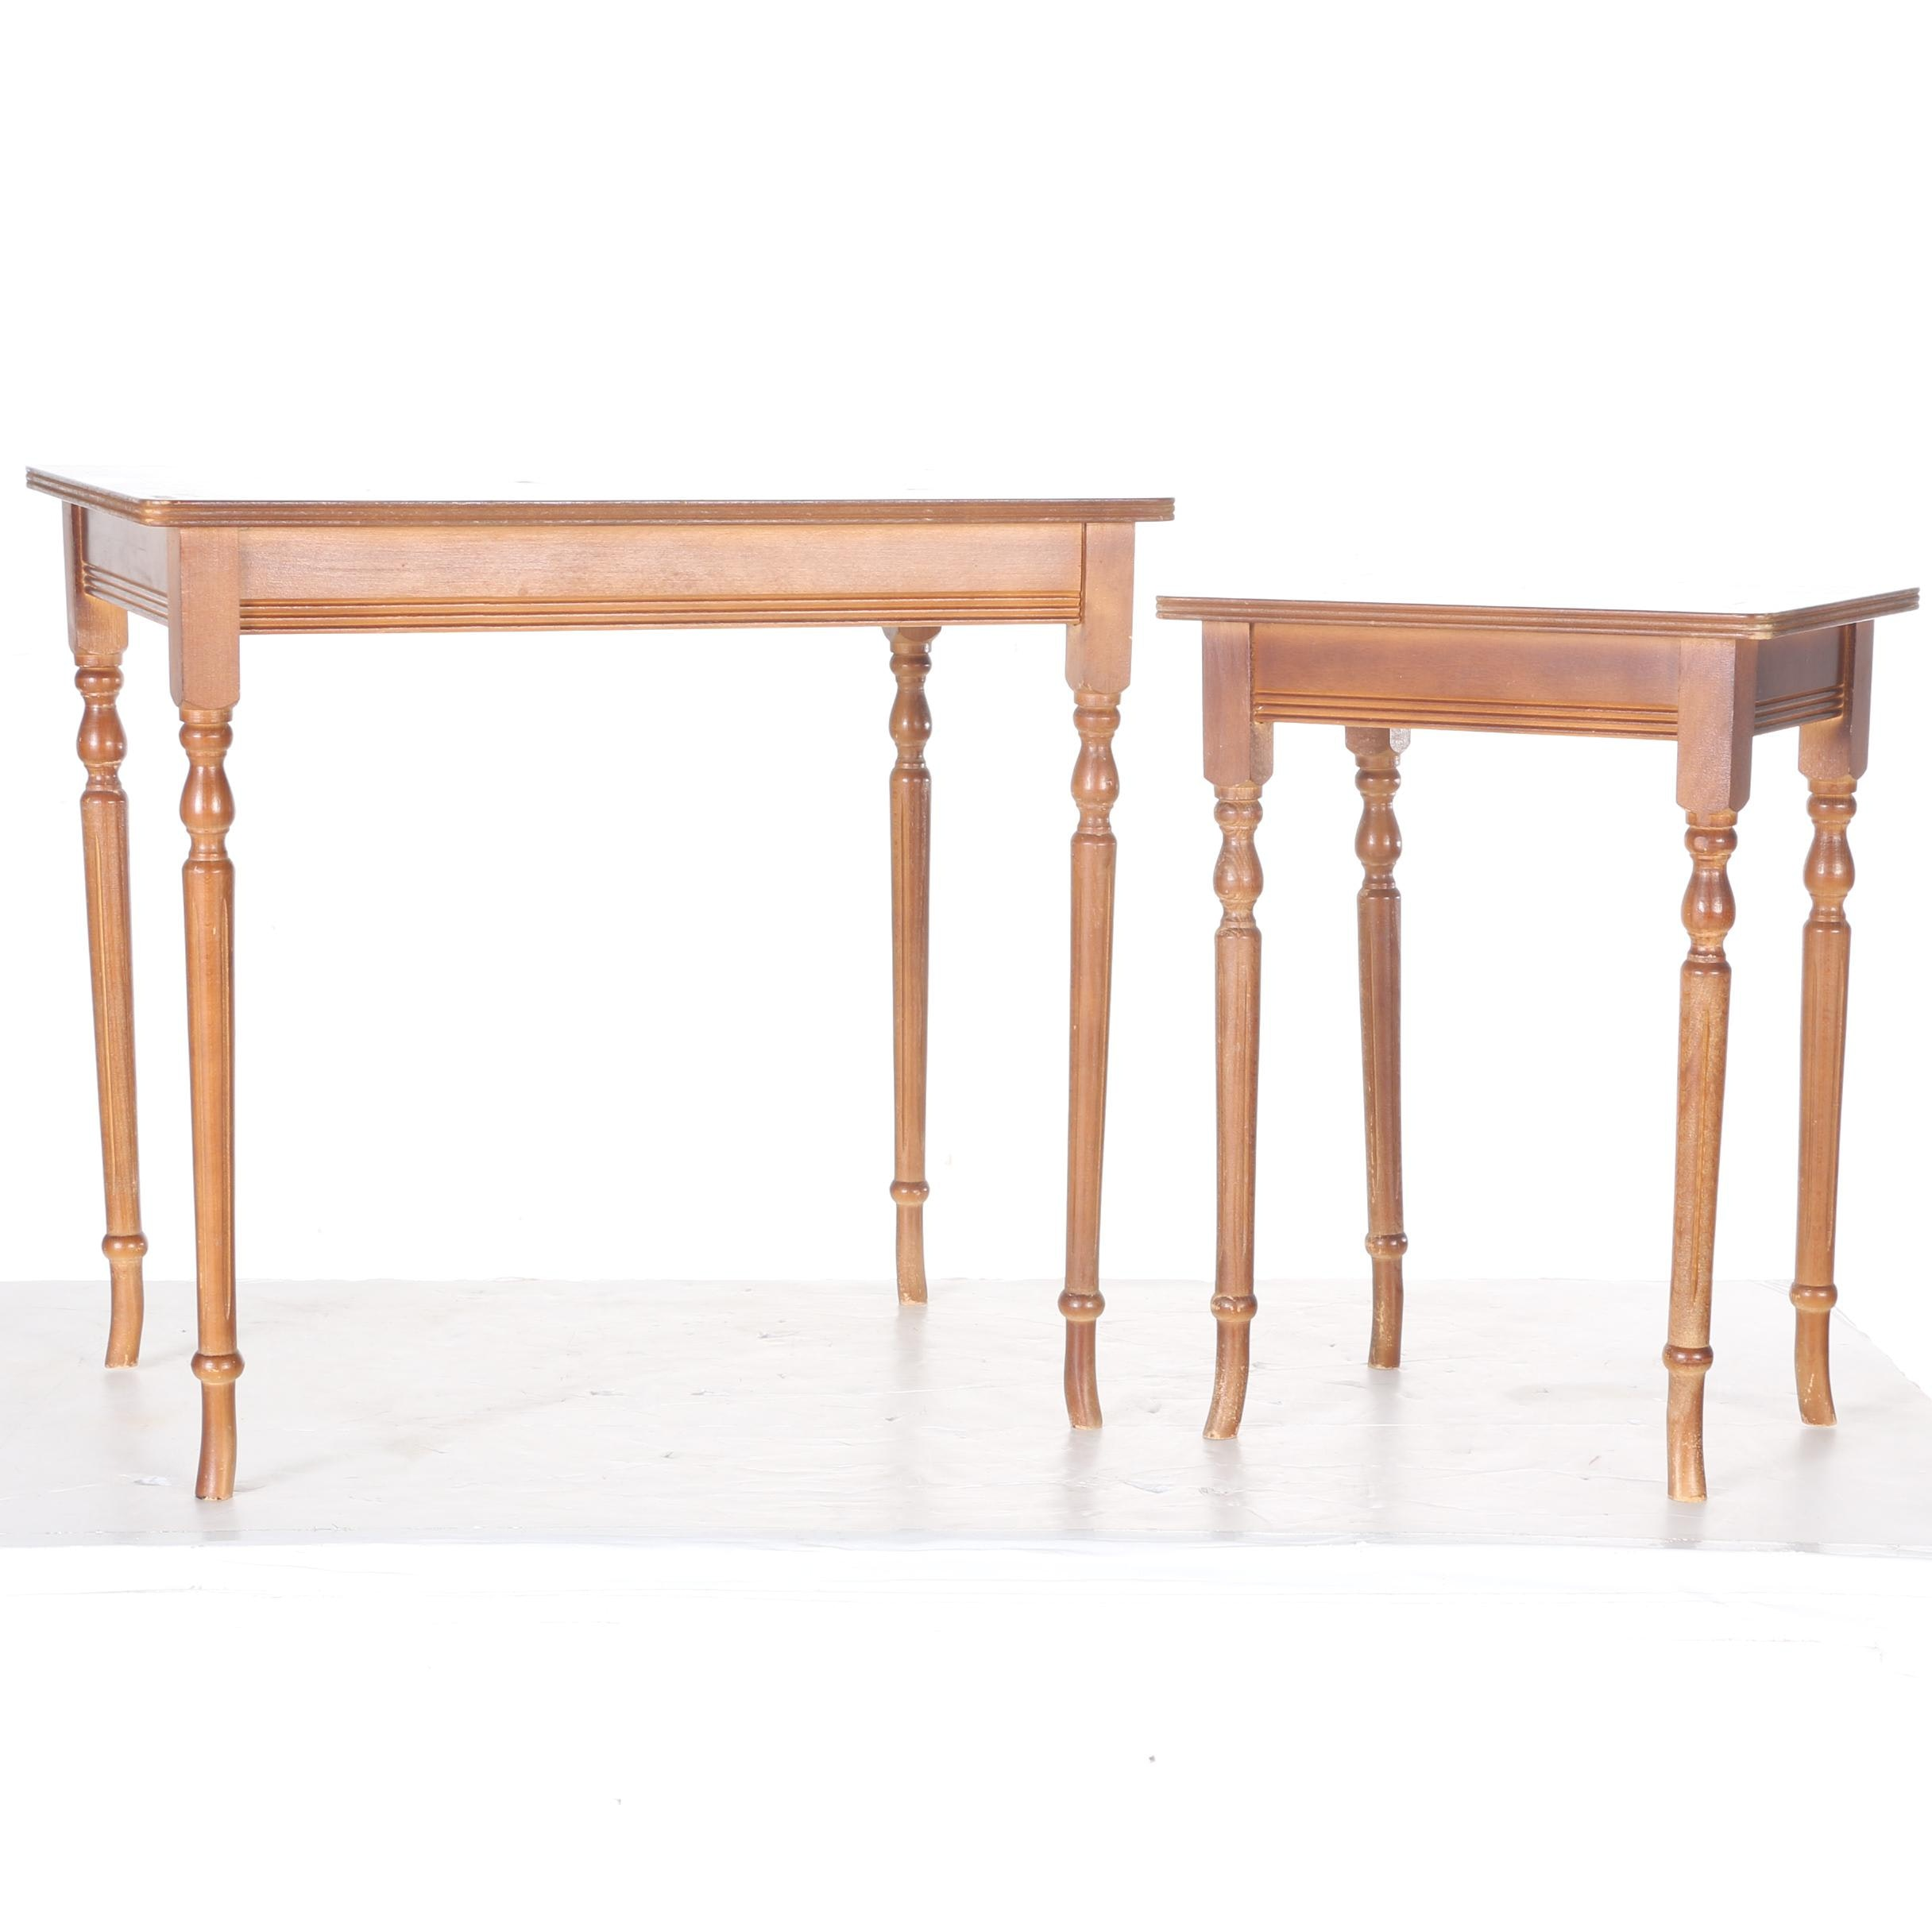 Vintage Mahogany-Stained Nesting Tables